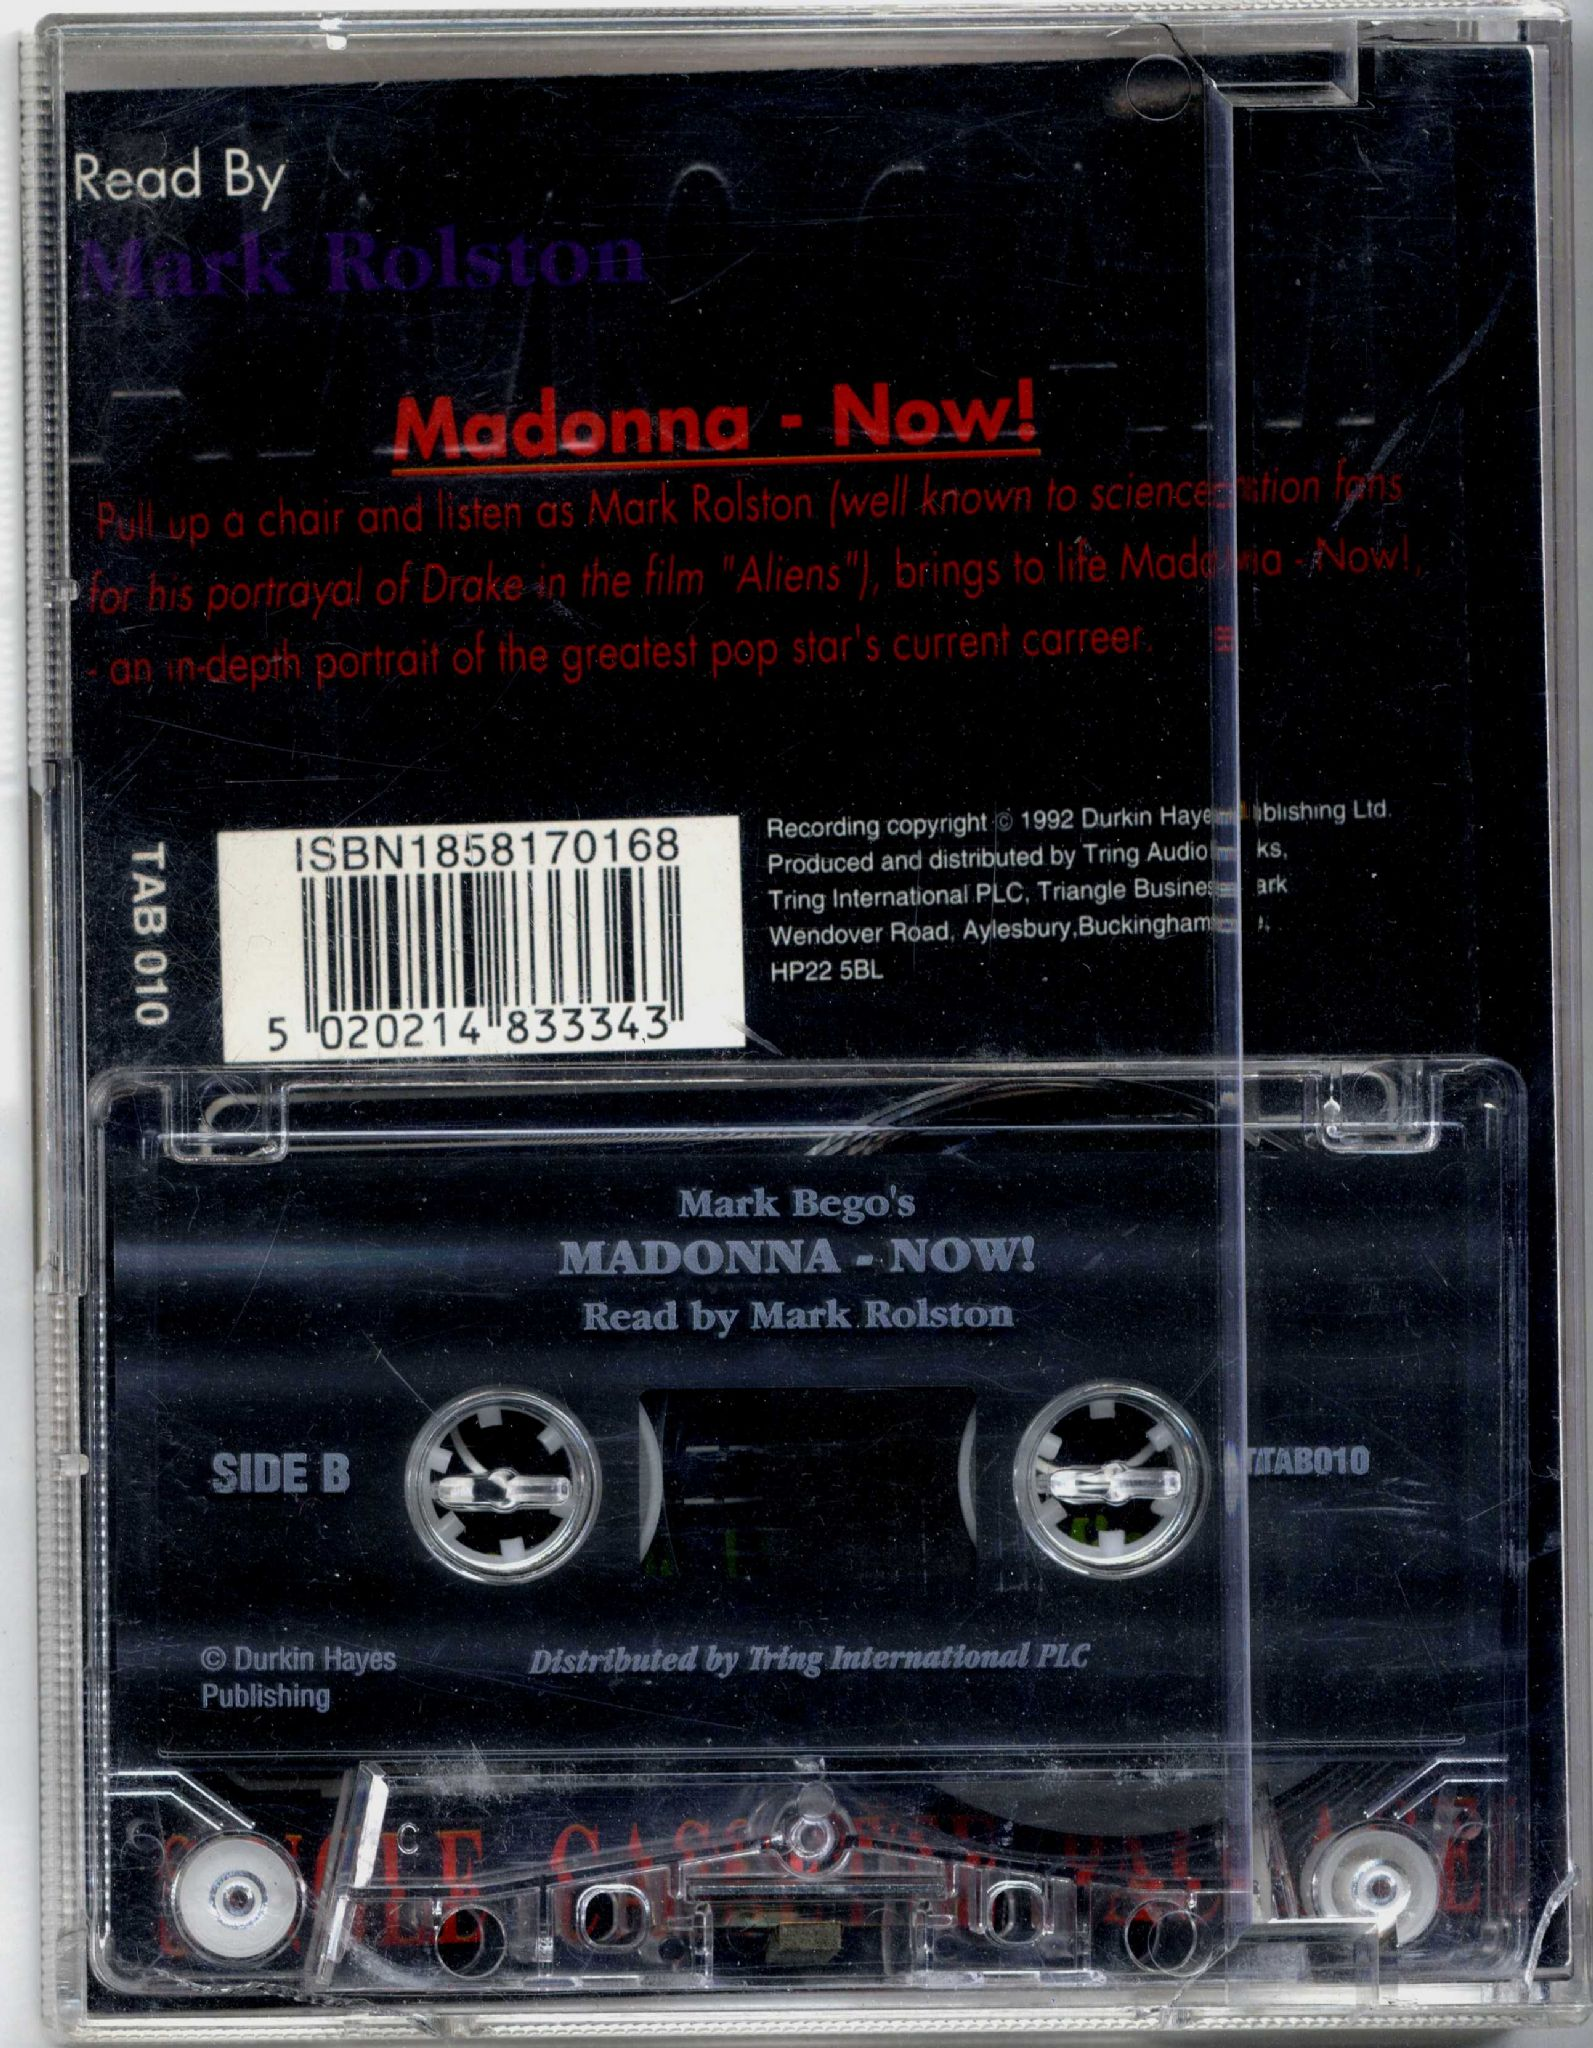 MADONNA NOW - UK AUDIO BOOK CASSETTE PACK